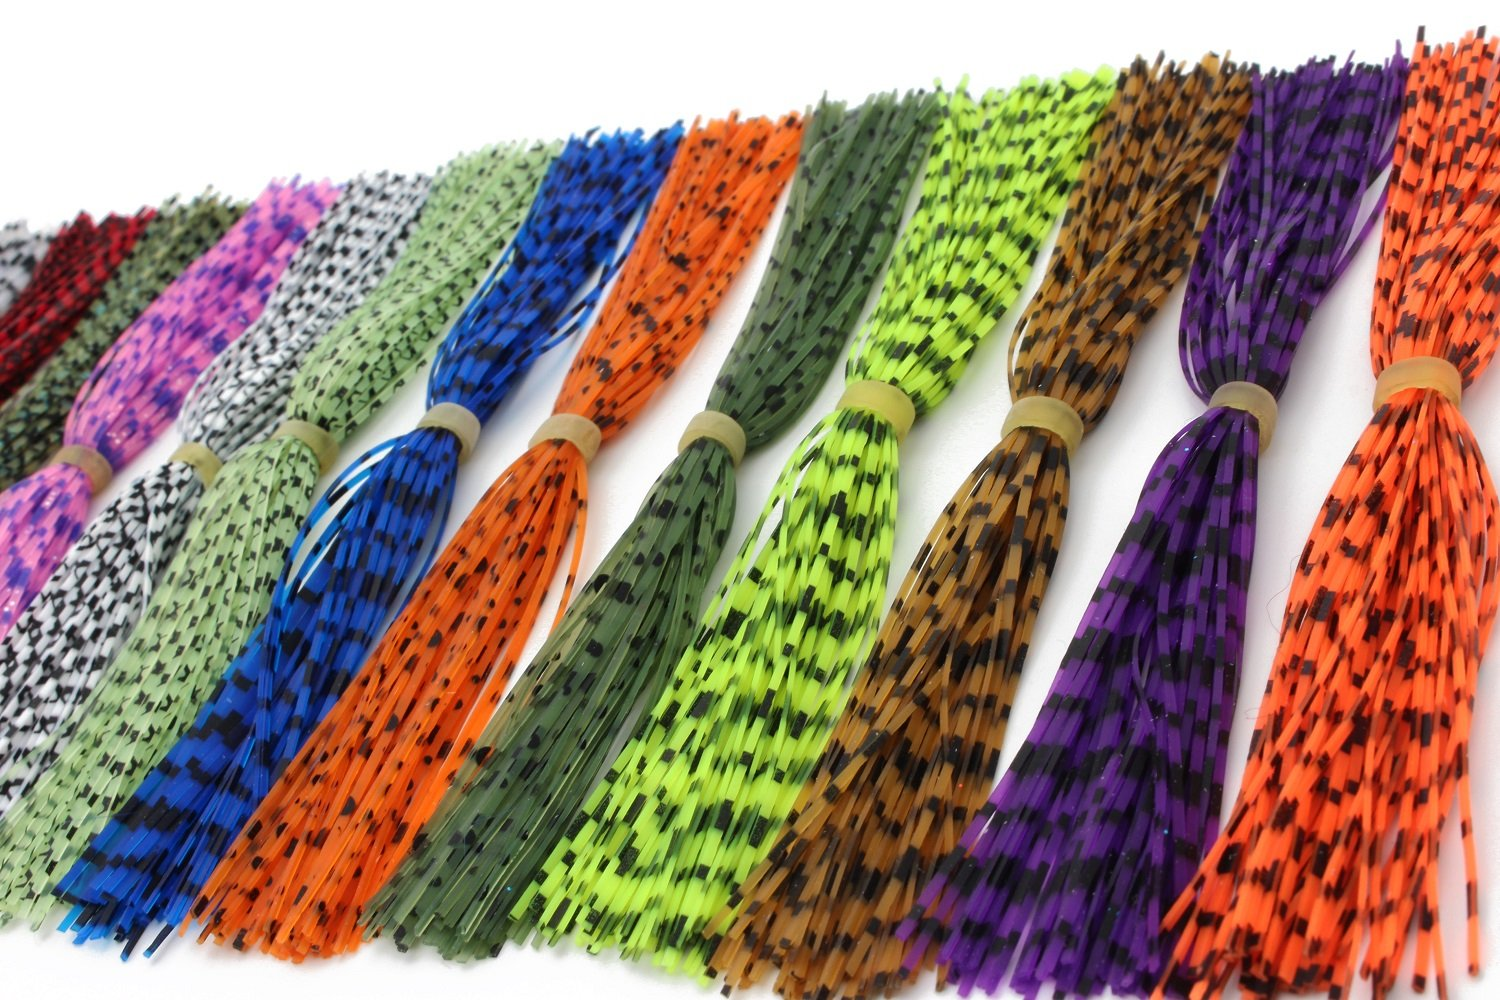 Tigofly 15 Bundles 13cm Barred Color Silicone Skirts Legs Pearl Flake DIY Spinner Bait Squid Rubber Thread Fly Tying Materials